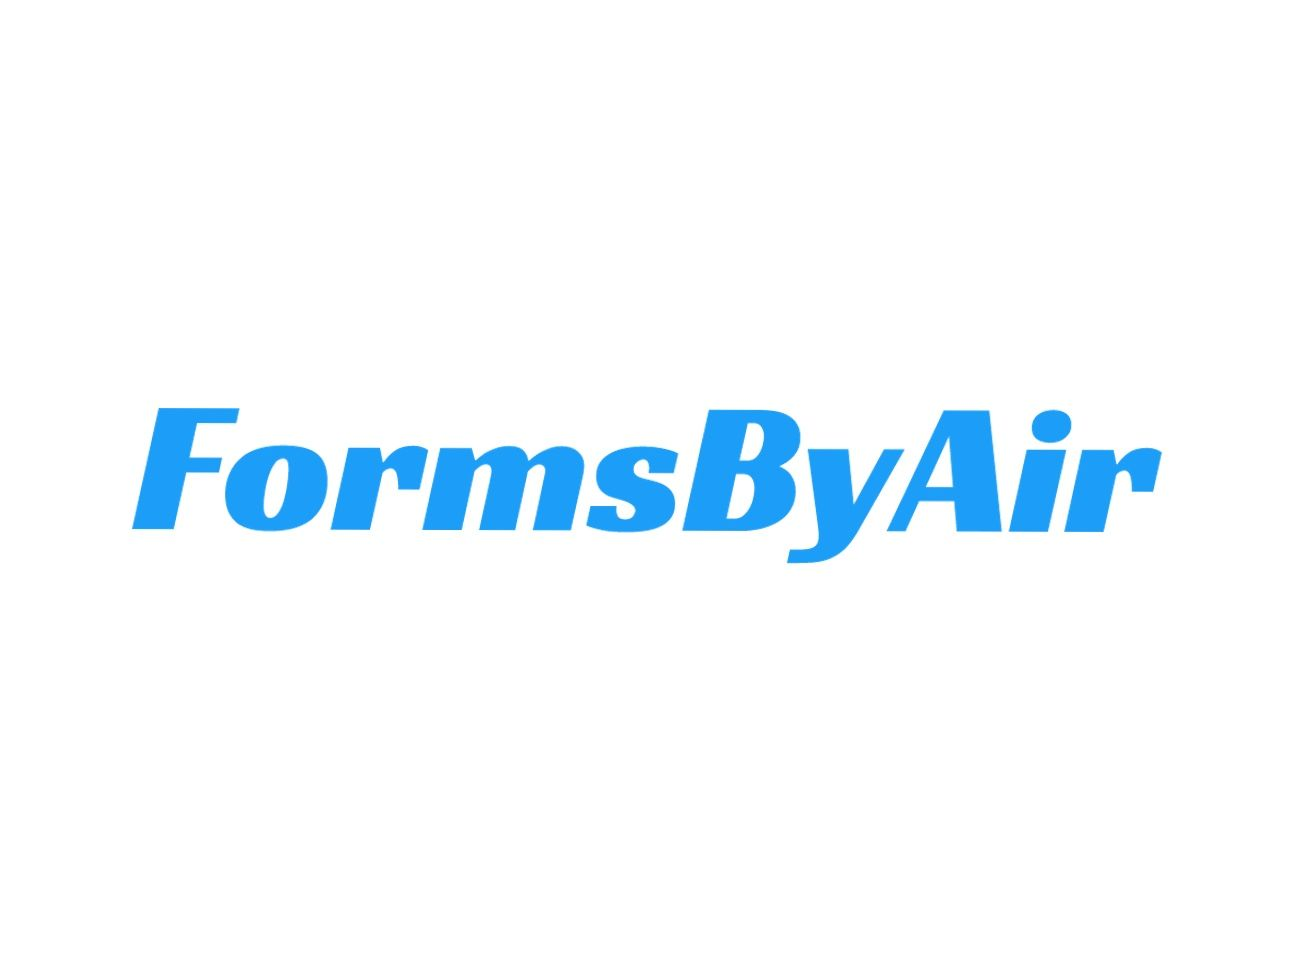 FormsbyAir on all devices